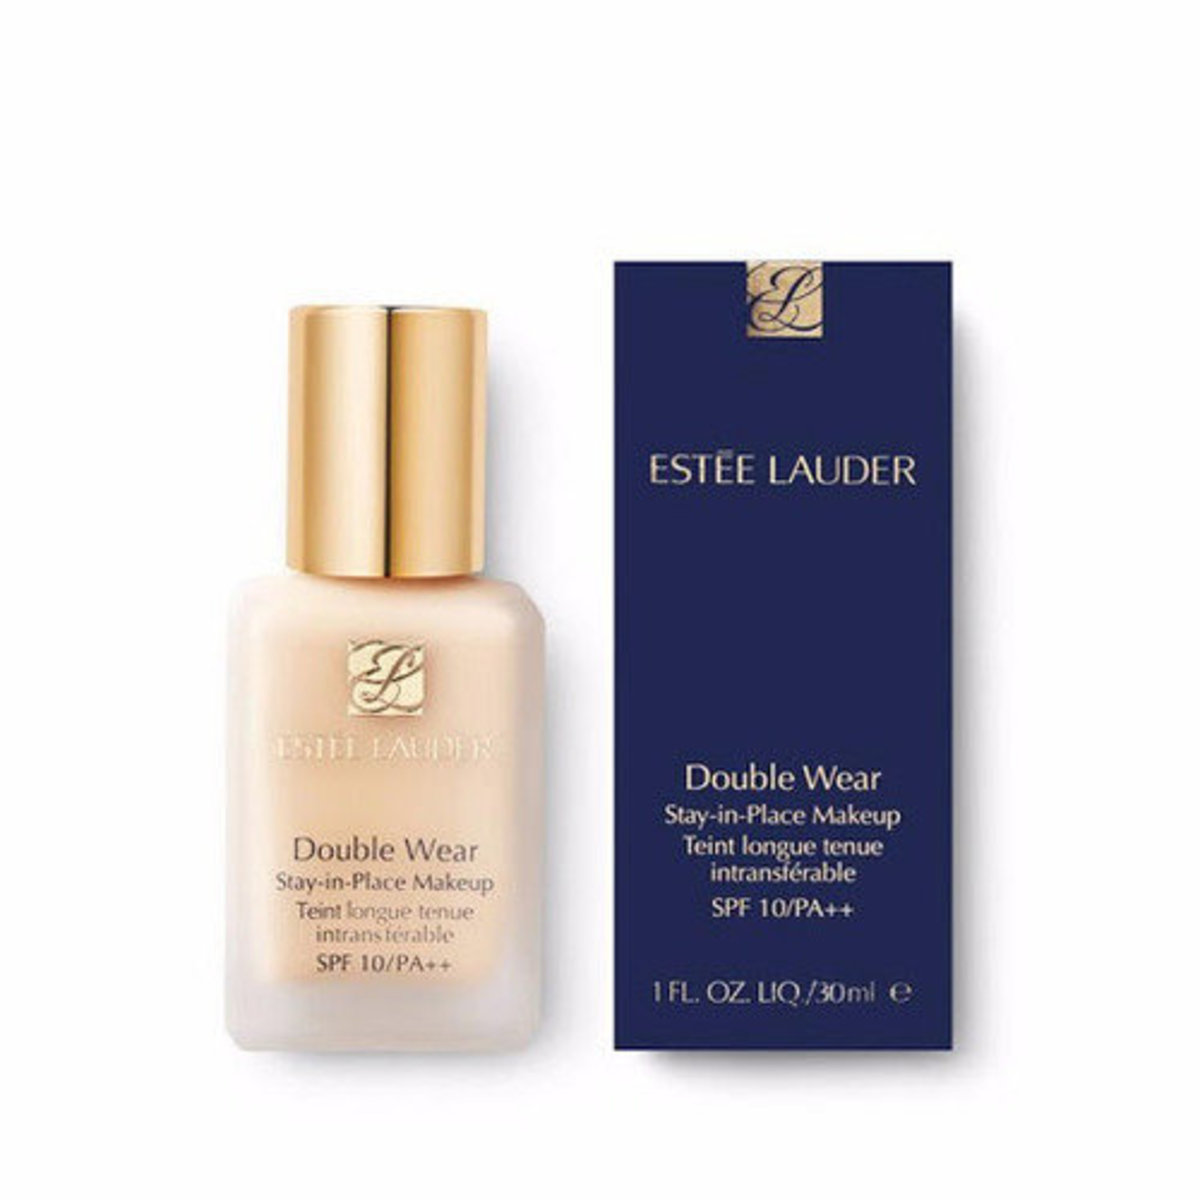 Double Wear Makeup Foundations SPF10 #2W0 30ml (Parallel Import)